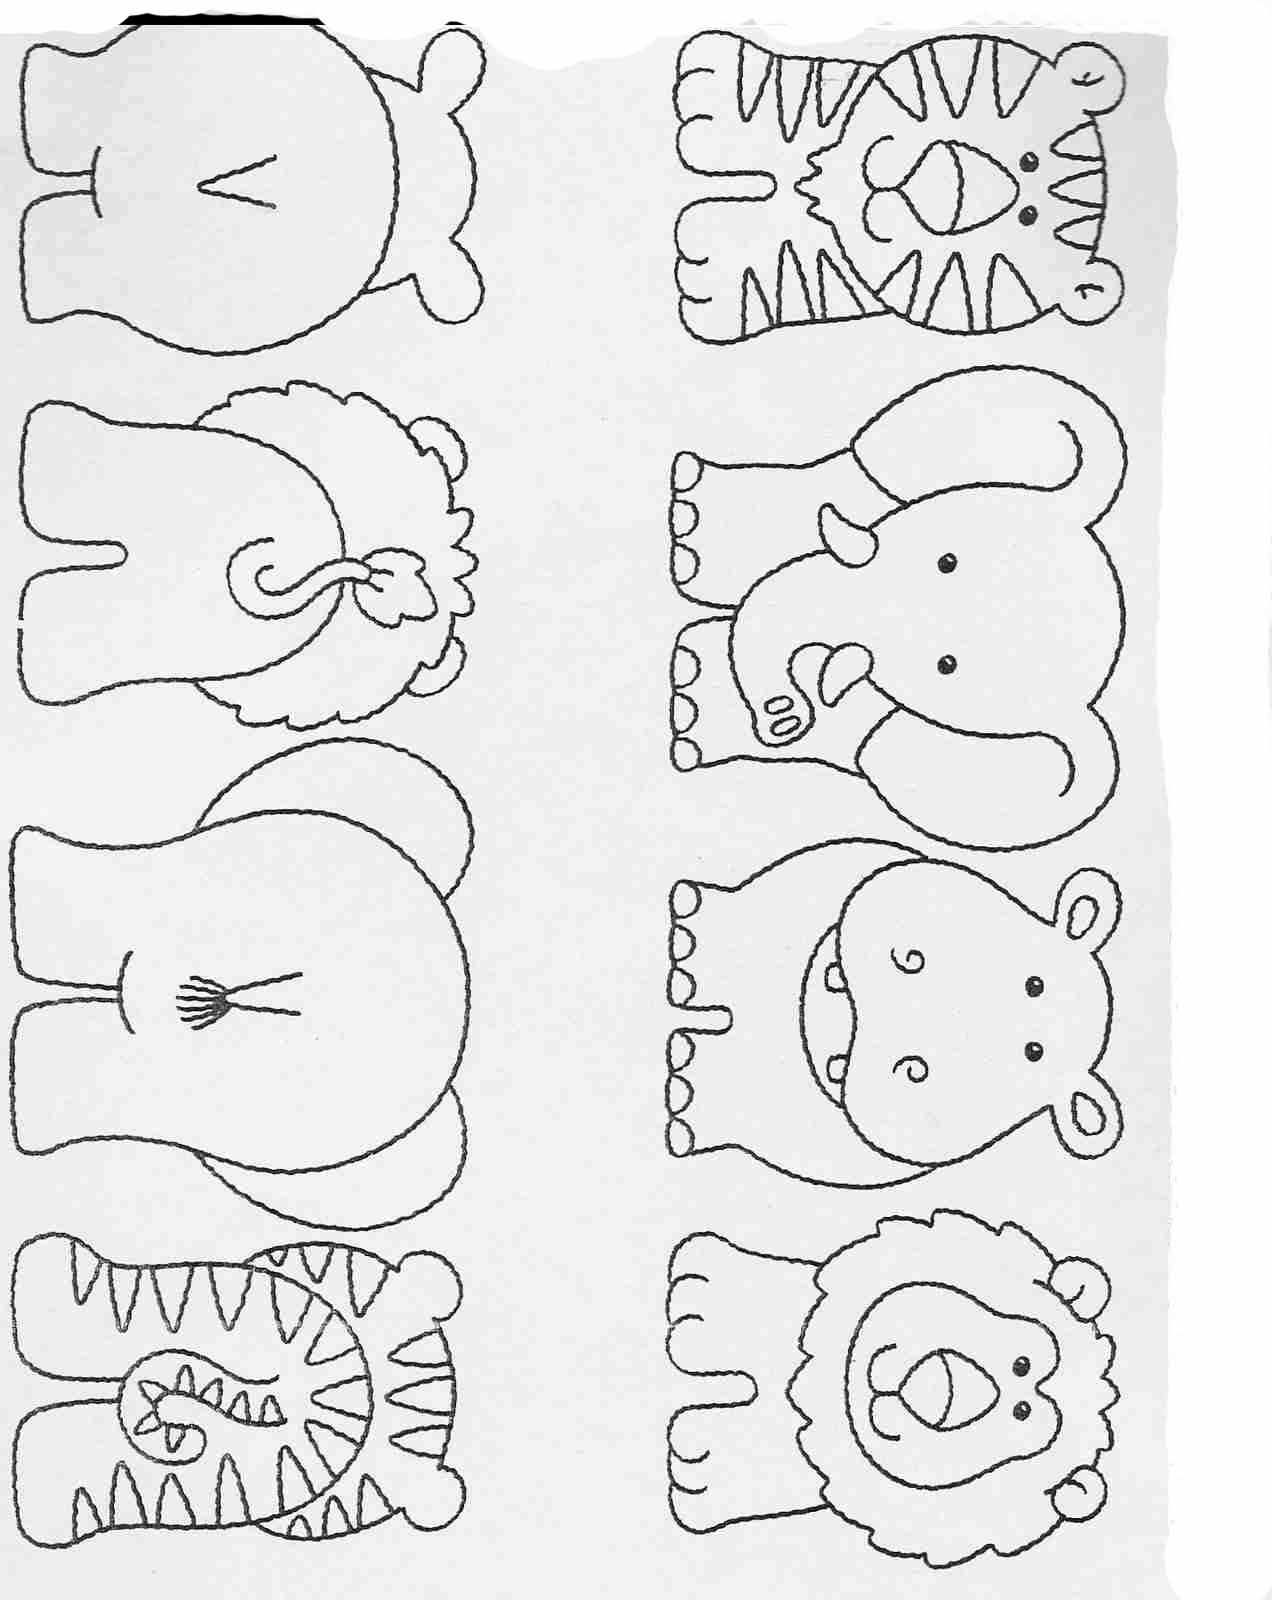 Printable Worksheets Activities For Kids Complete The Drawings 44